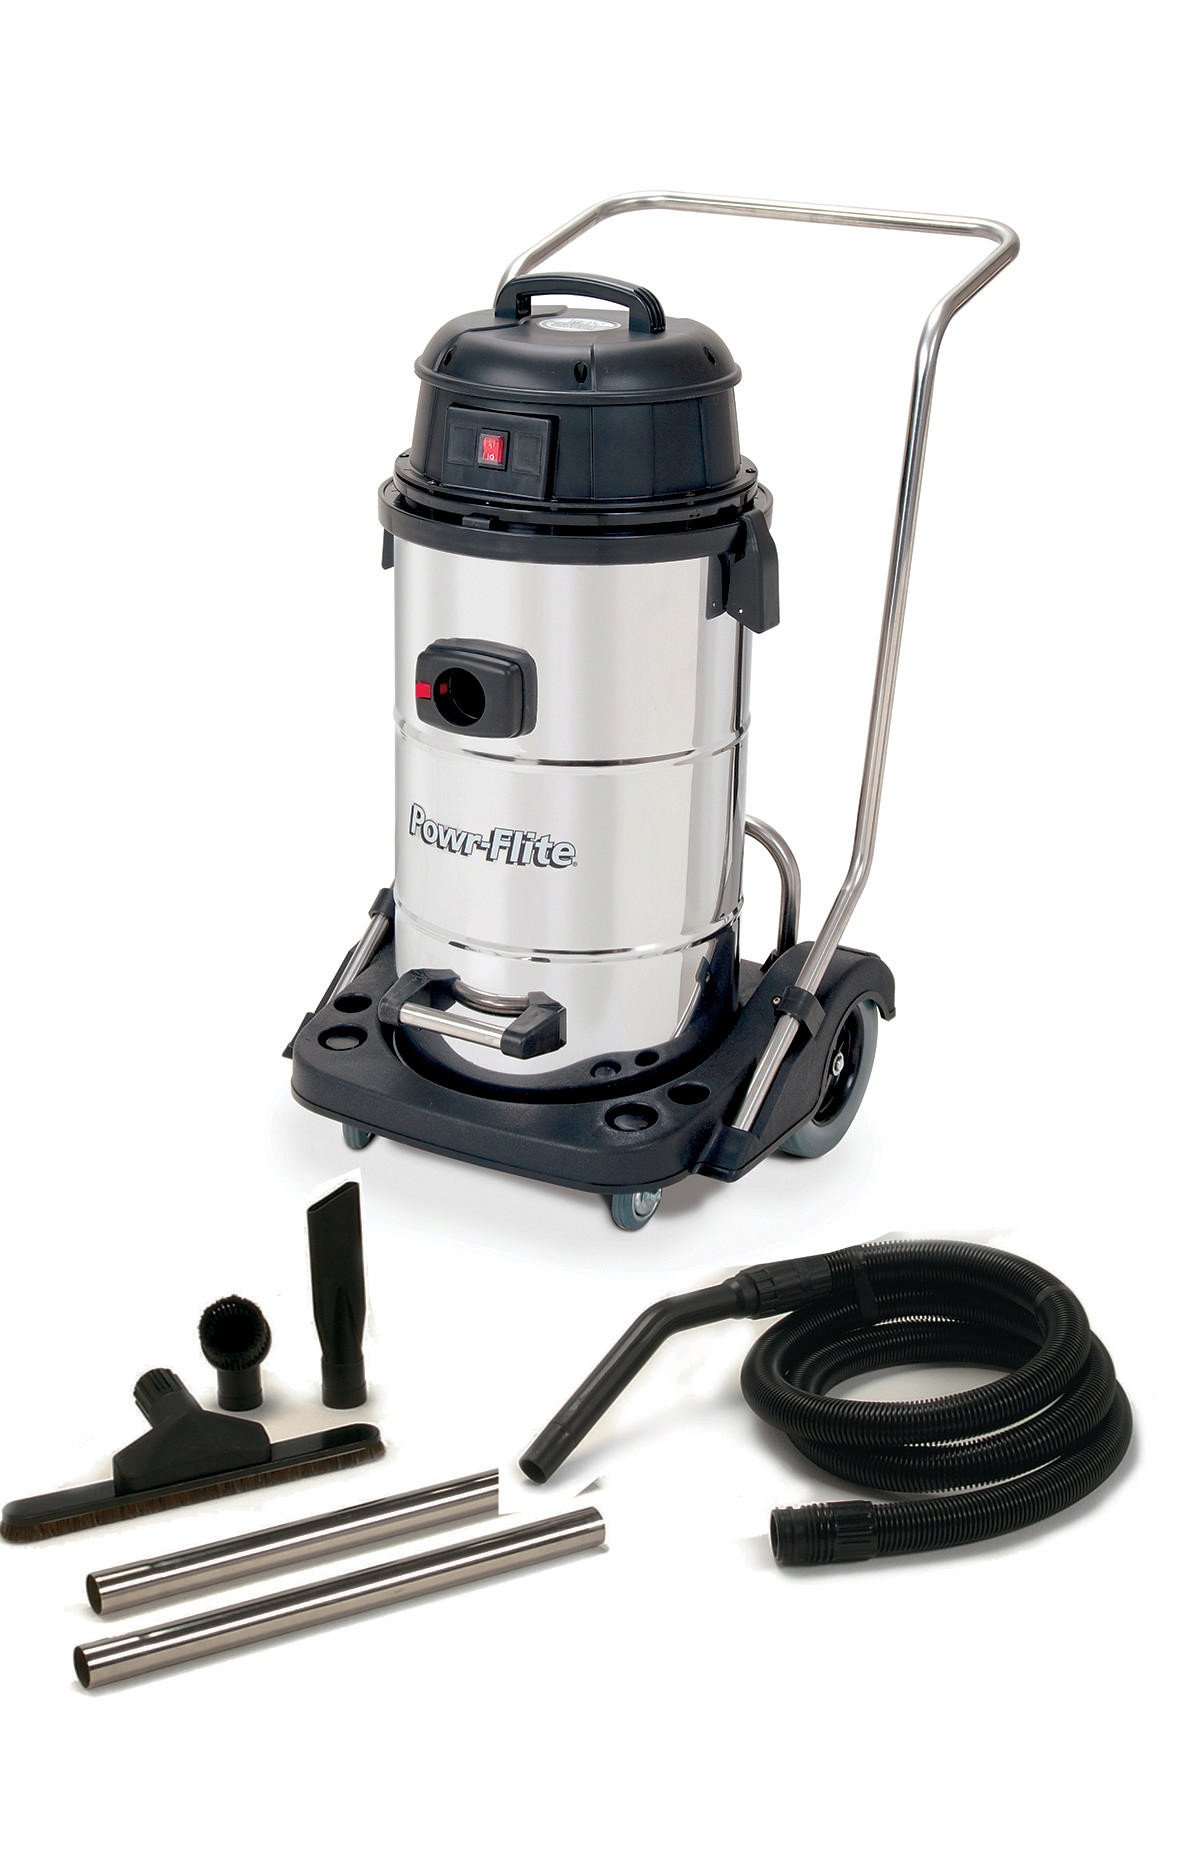 Powr-Flite PF53 Wet Dry Vacuum with Stainless Steel Tank and Tool Kit, 15 gal Capacity